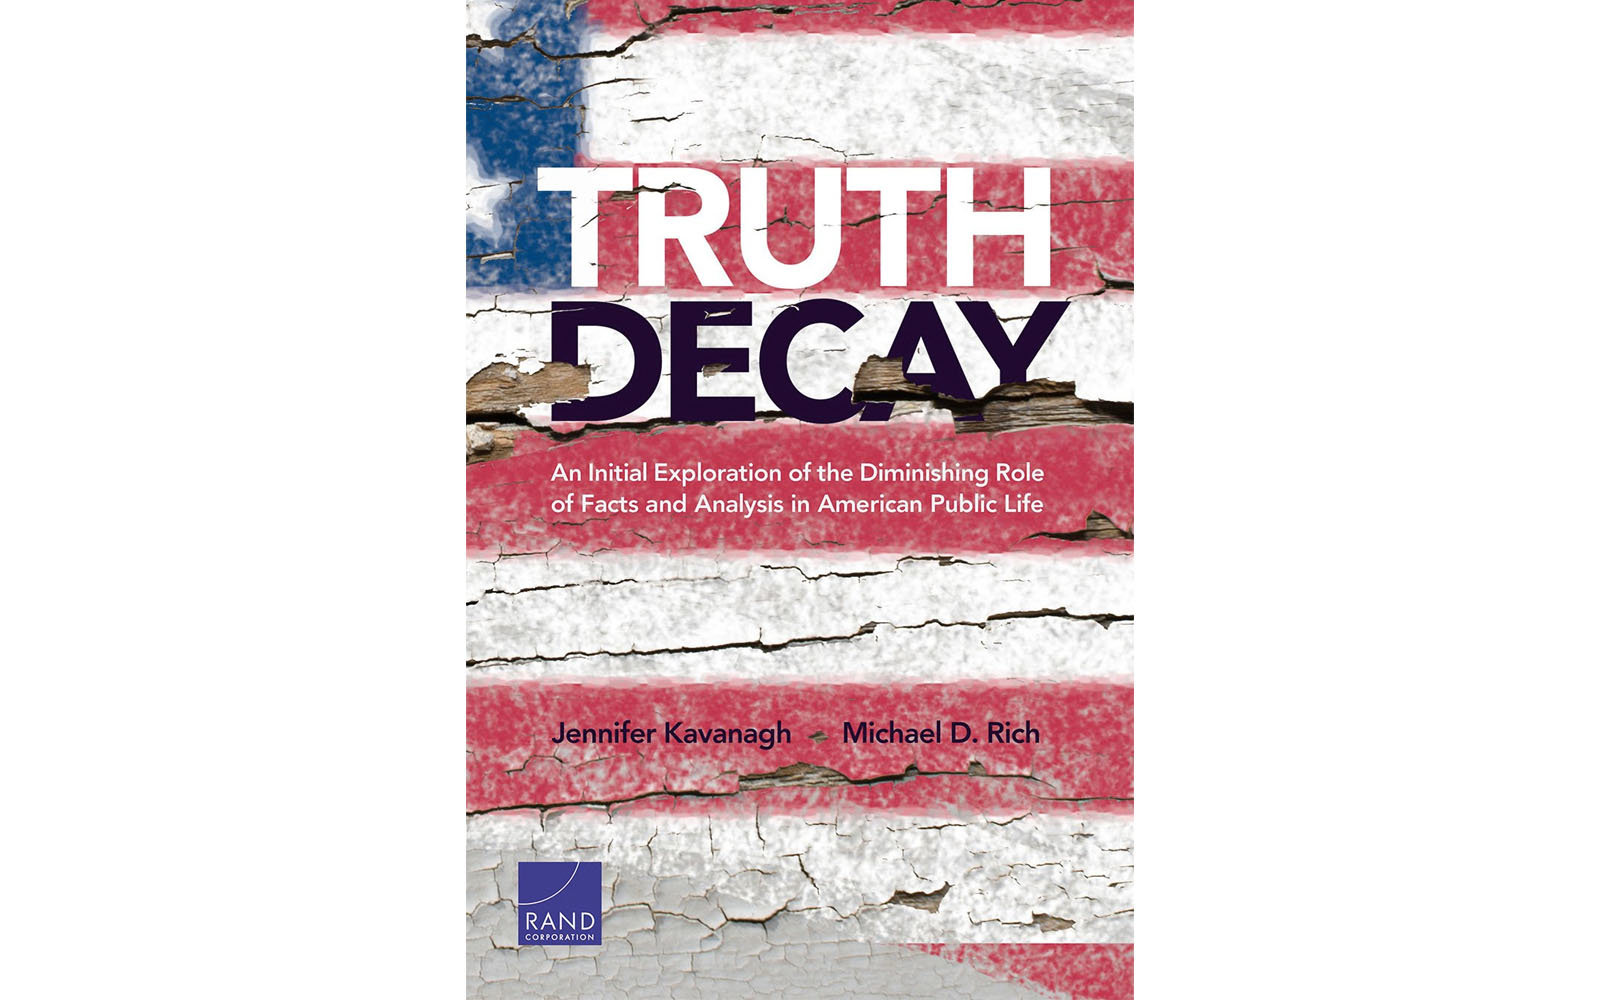 Truth Decay by Jennifer Kavanagh